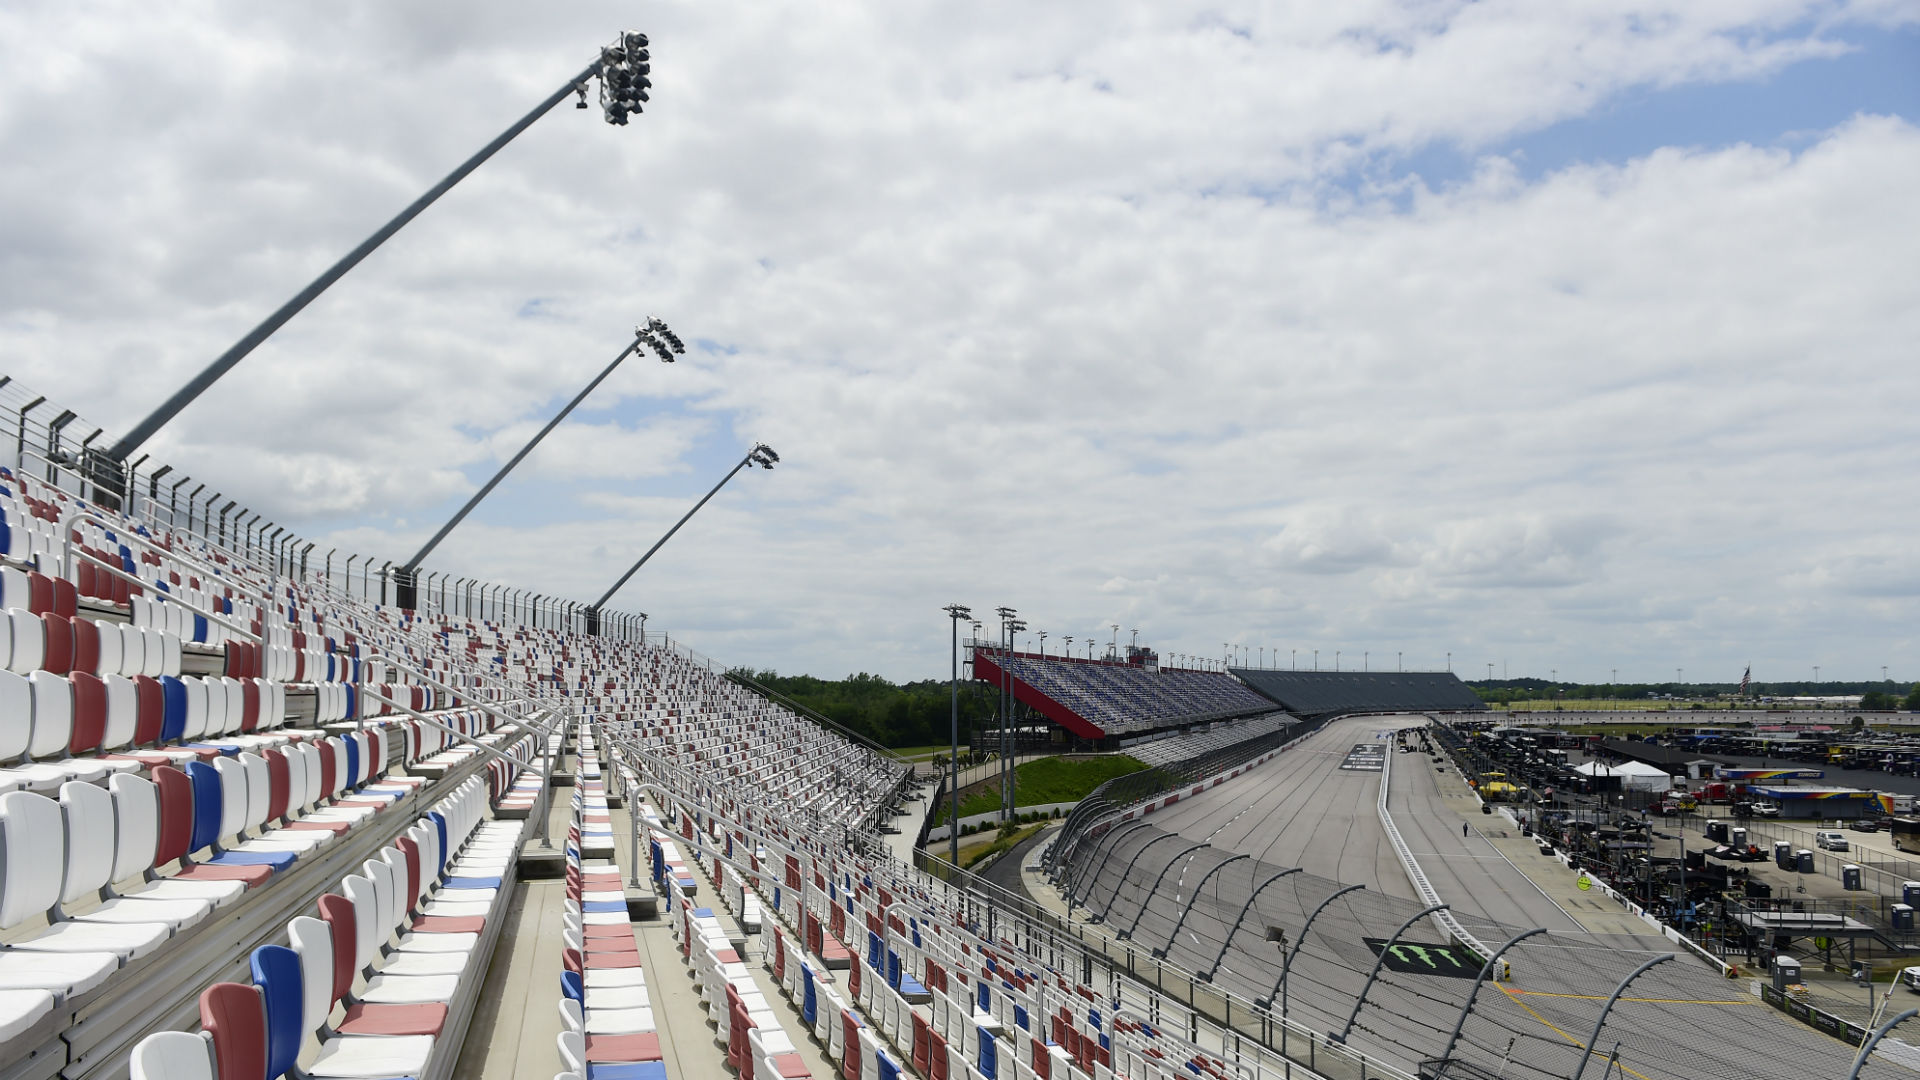 NASCAR at Darlington live race updates, results, highlights from the Real Heroes 400